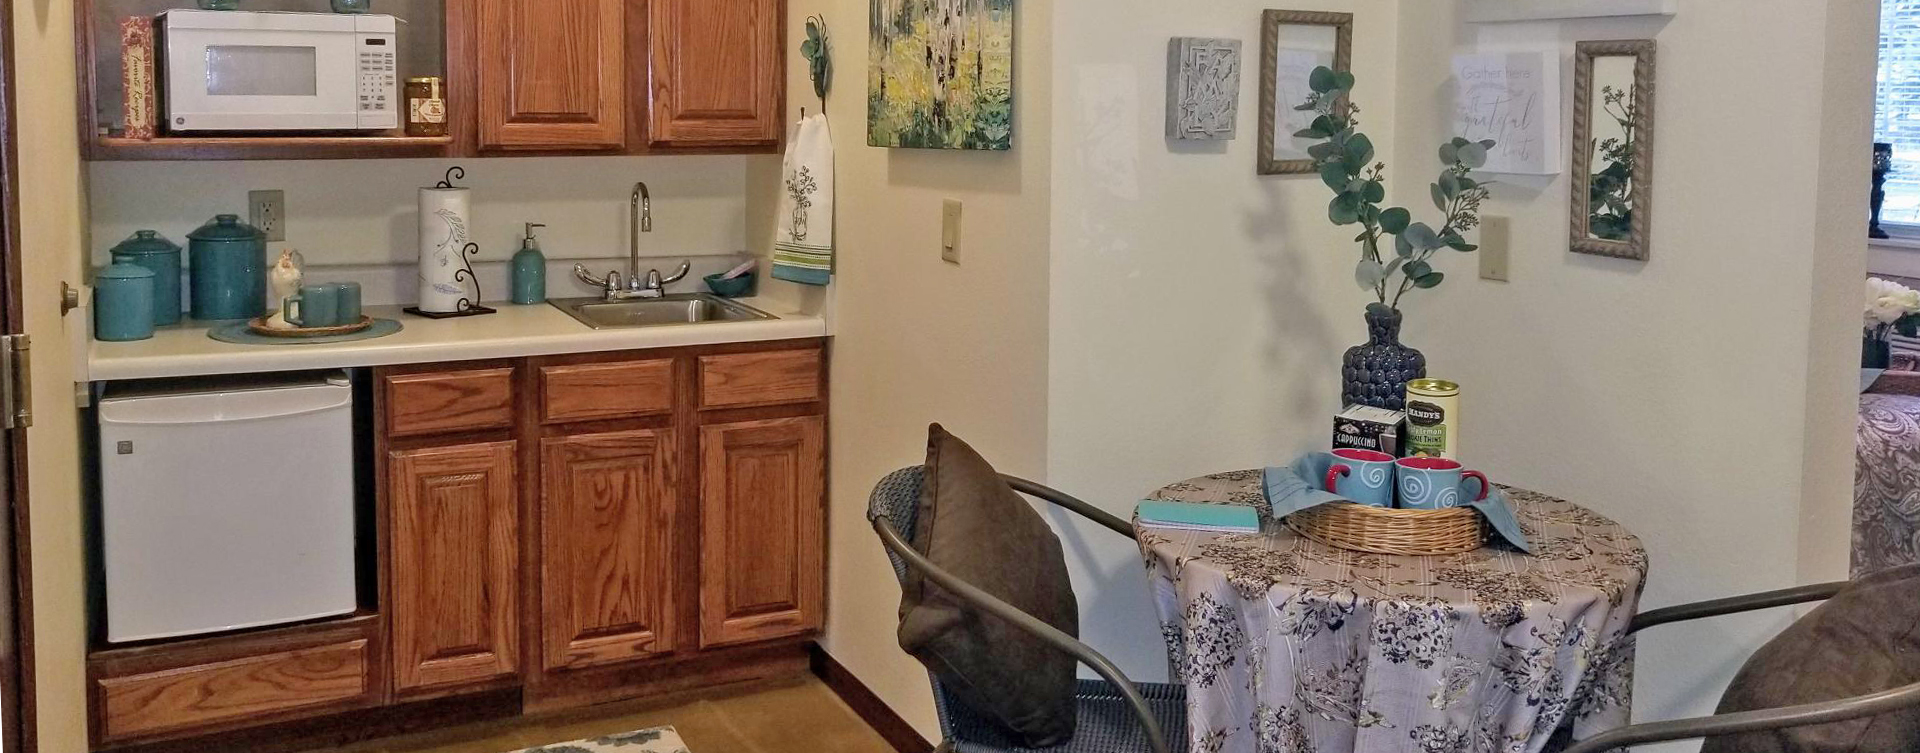 Enjoy senior friendly amenities, personal climate control and security in an apartment at Bickford of Battle Creek